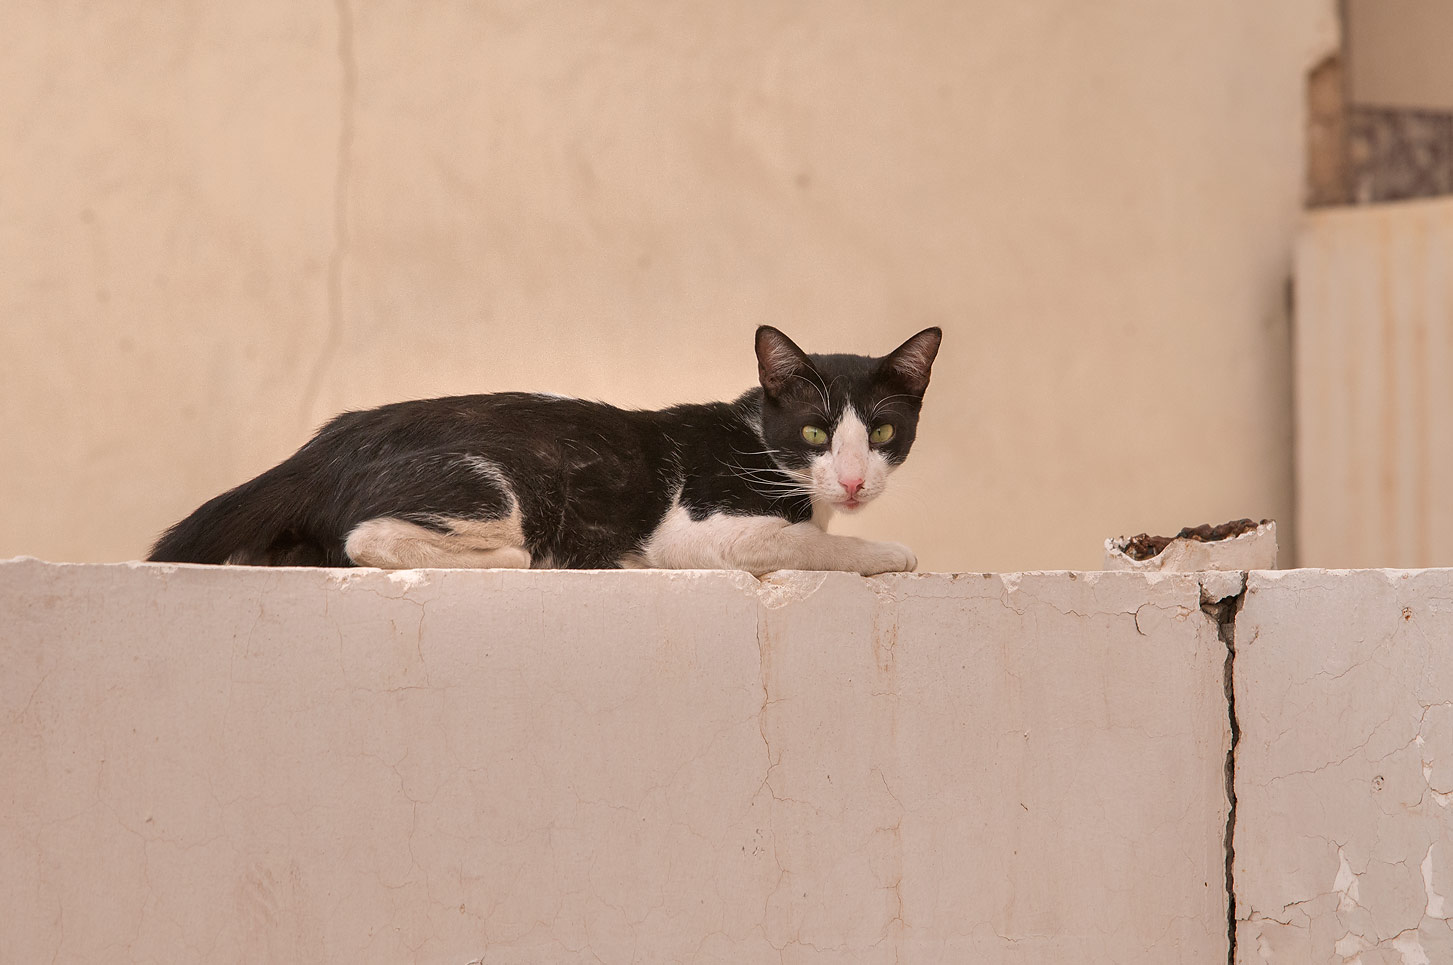 Tuxedo cat sitting on a wall at Ziyad Bin Eyad St., Al Doha Al Jadeeda area. Doha, Qatar